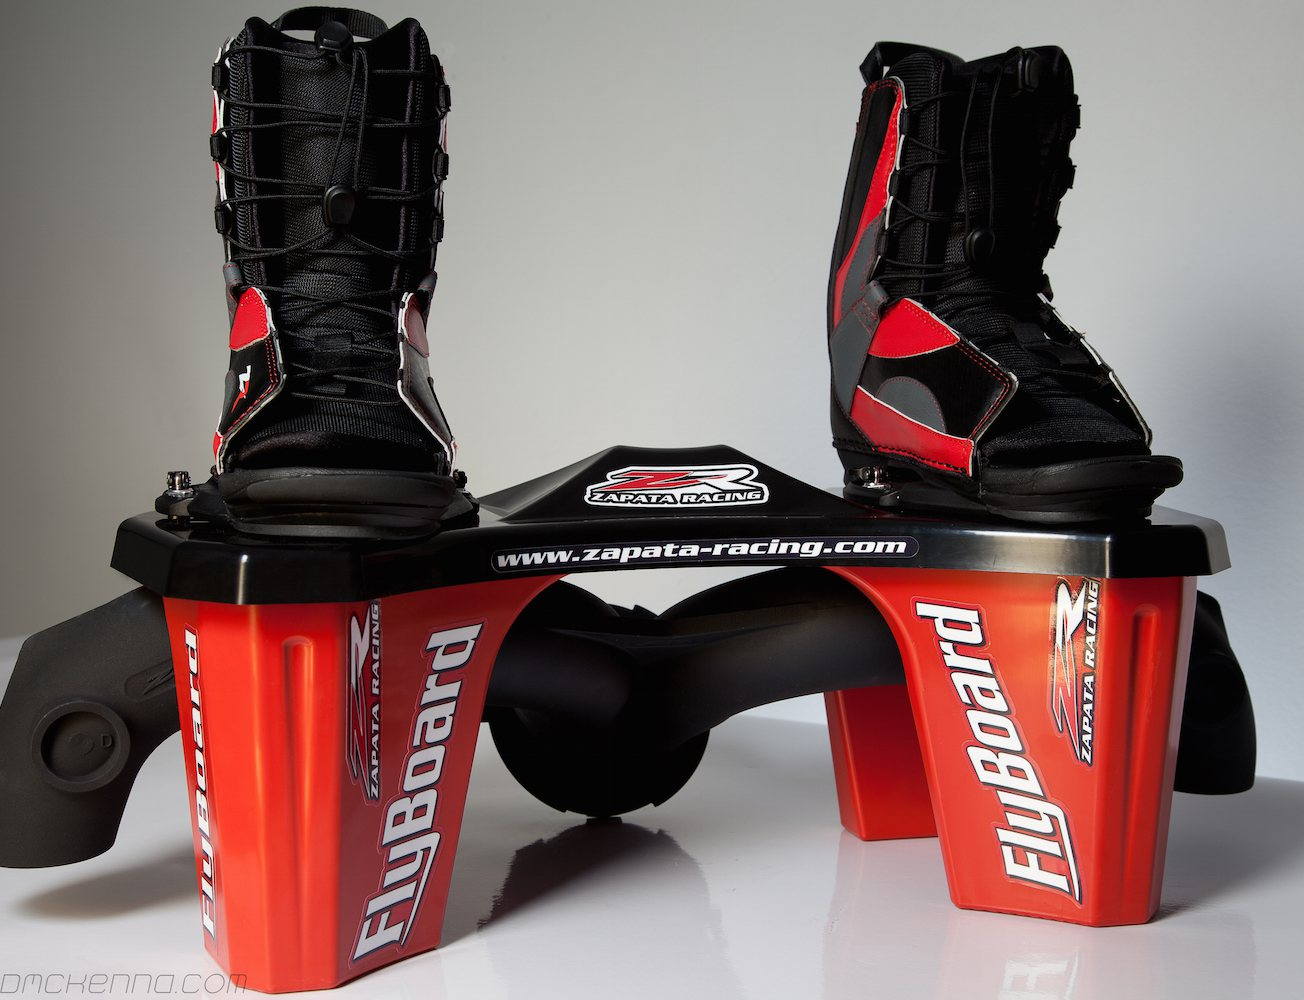 flyboard-v3-complete-kit-by-zapata-04